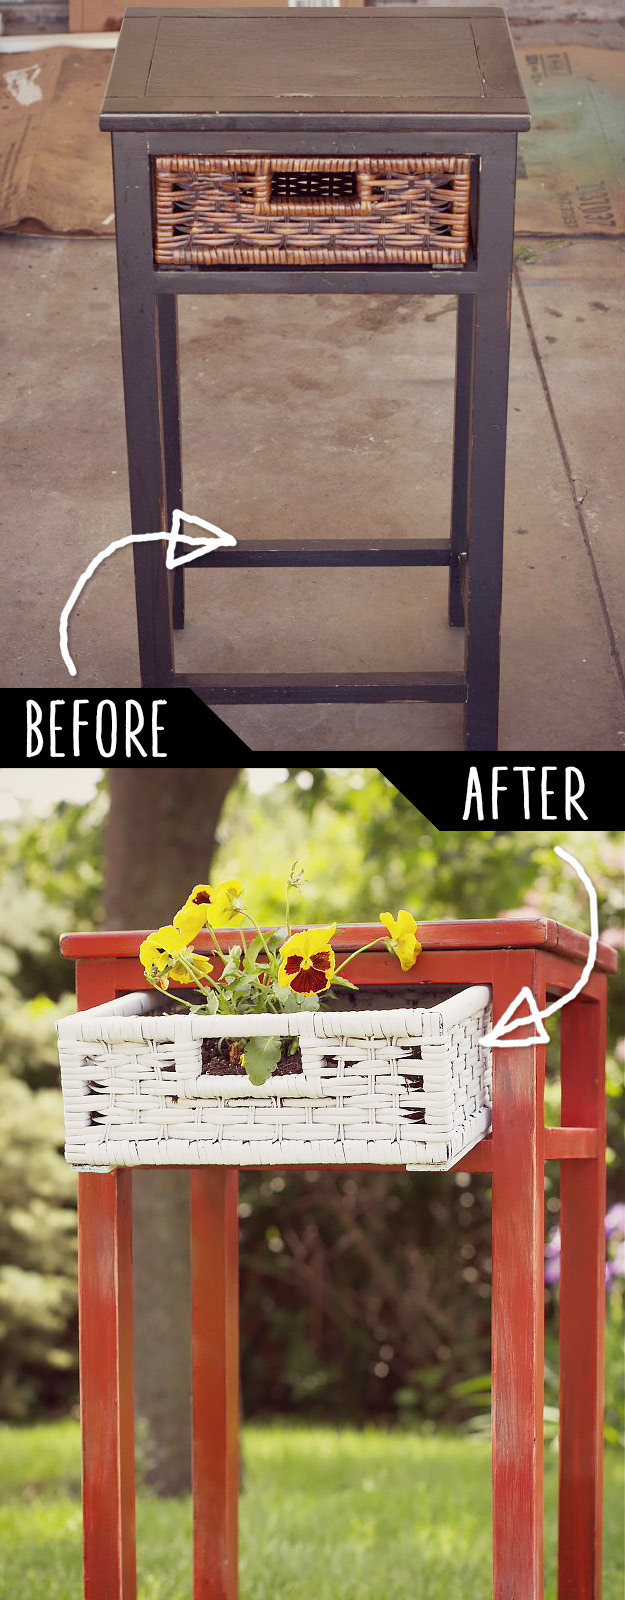 Upcycle Side Table Into Planter